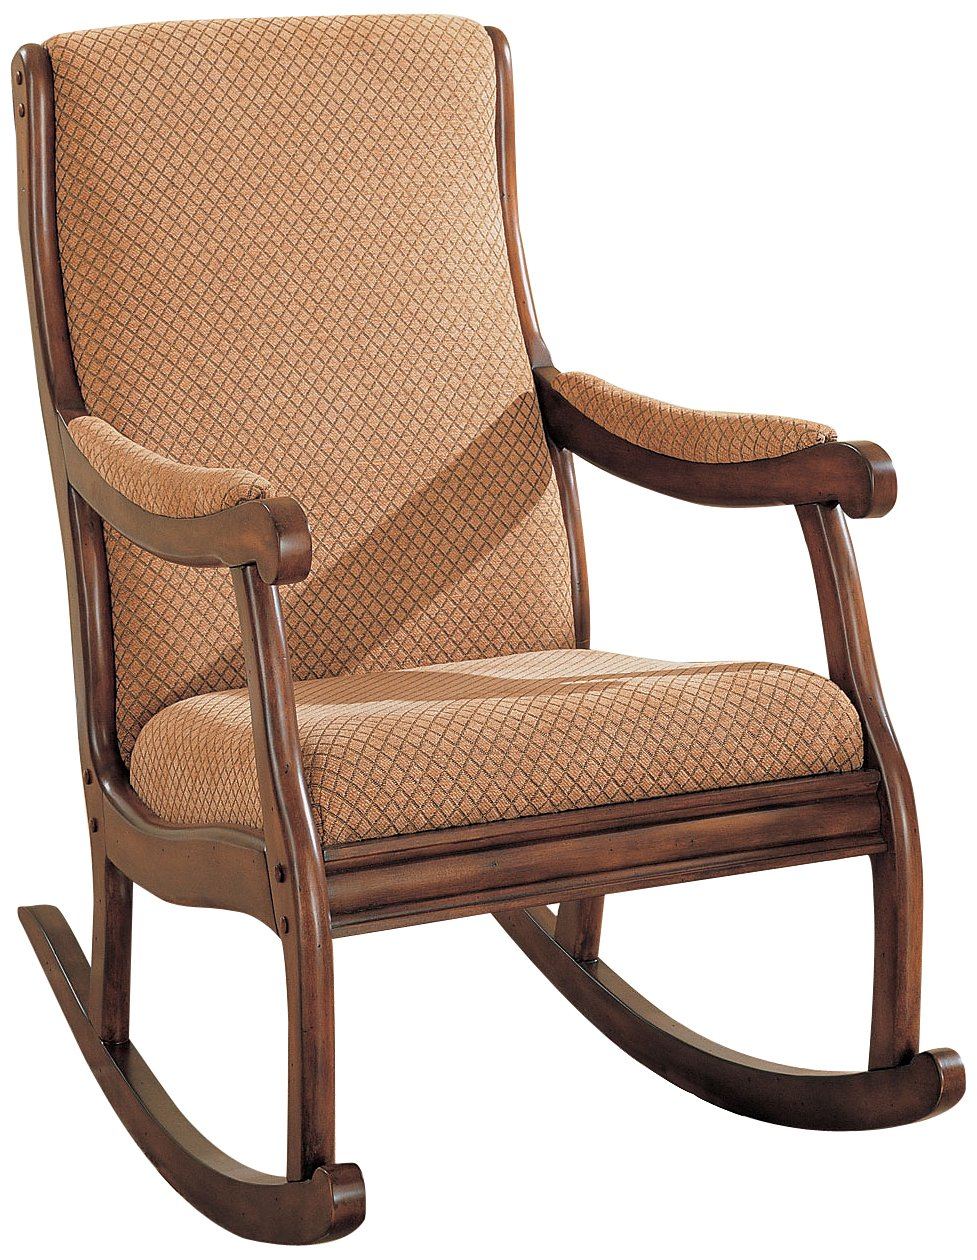 William's Home Furnishing Rocking Chair